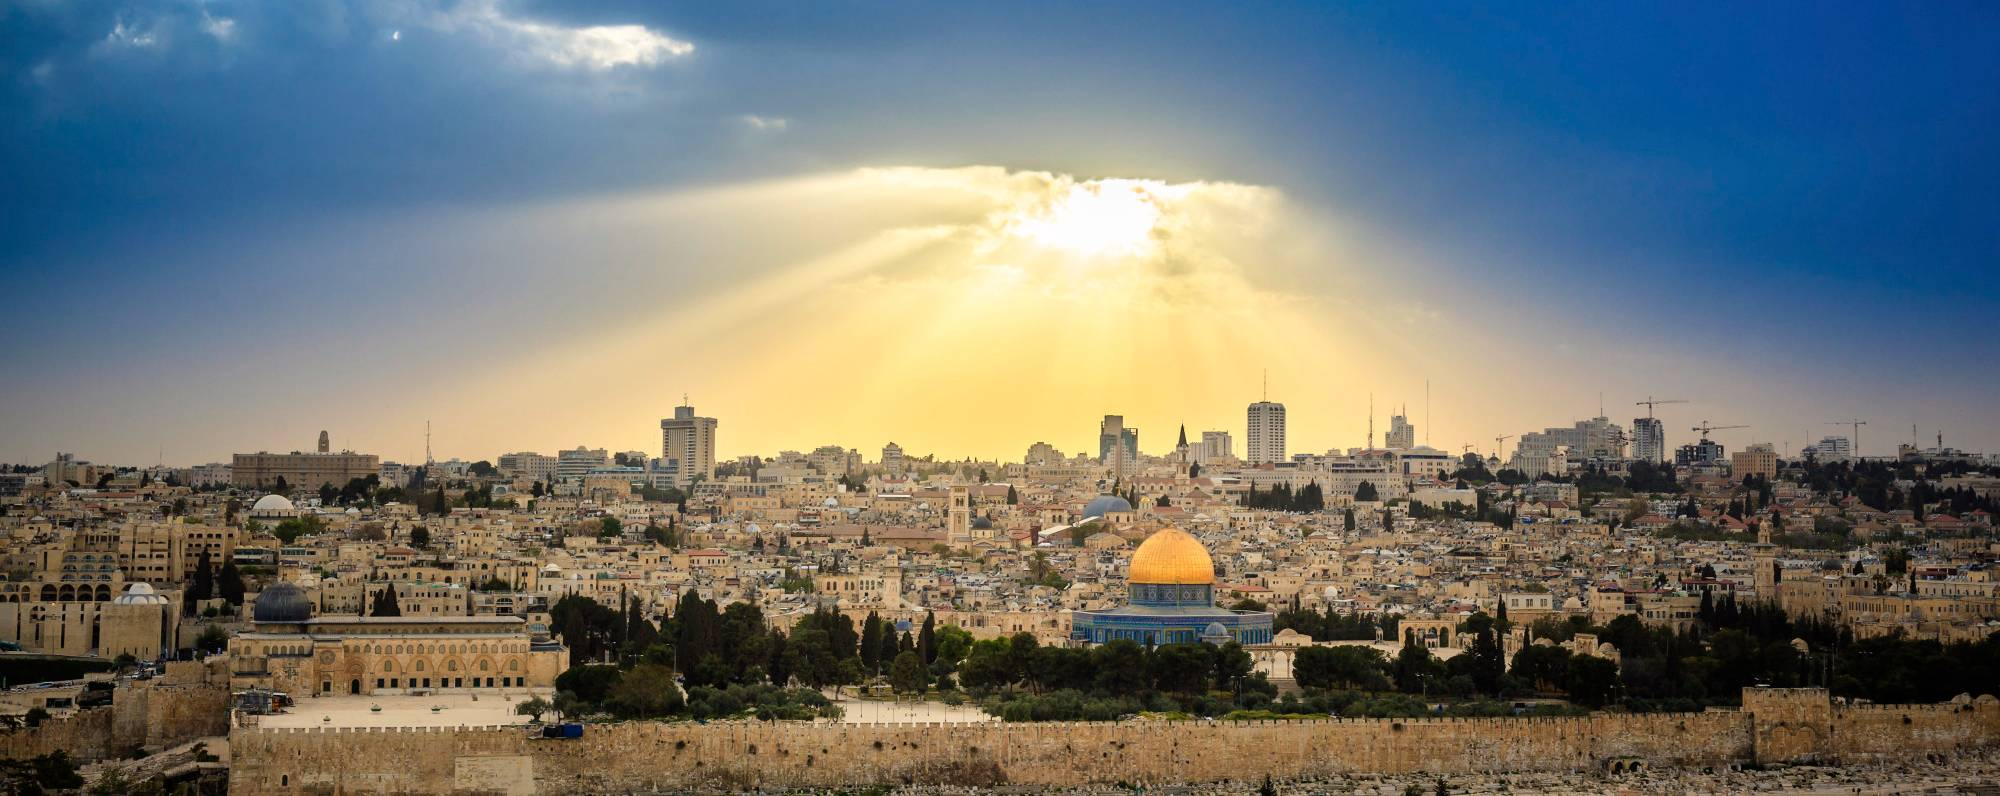 """<a href=""""http://www.arzaworld.com/The-Israel-You-Havent-Seen.aspx"""""""">                                                                 <span class=""""slider_title"""">                                     The Israel You Haven&#39;t Seen...                                </span>                                                                 </a>"""